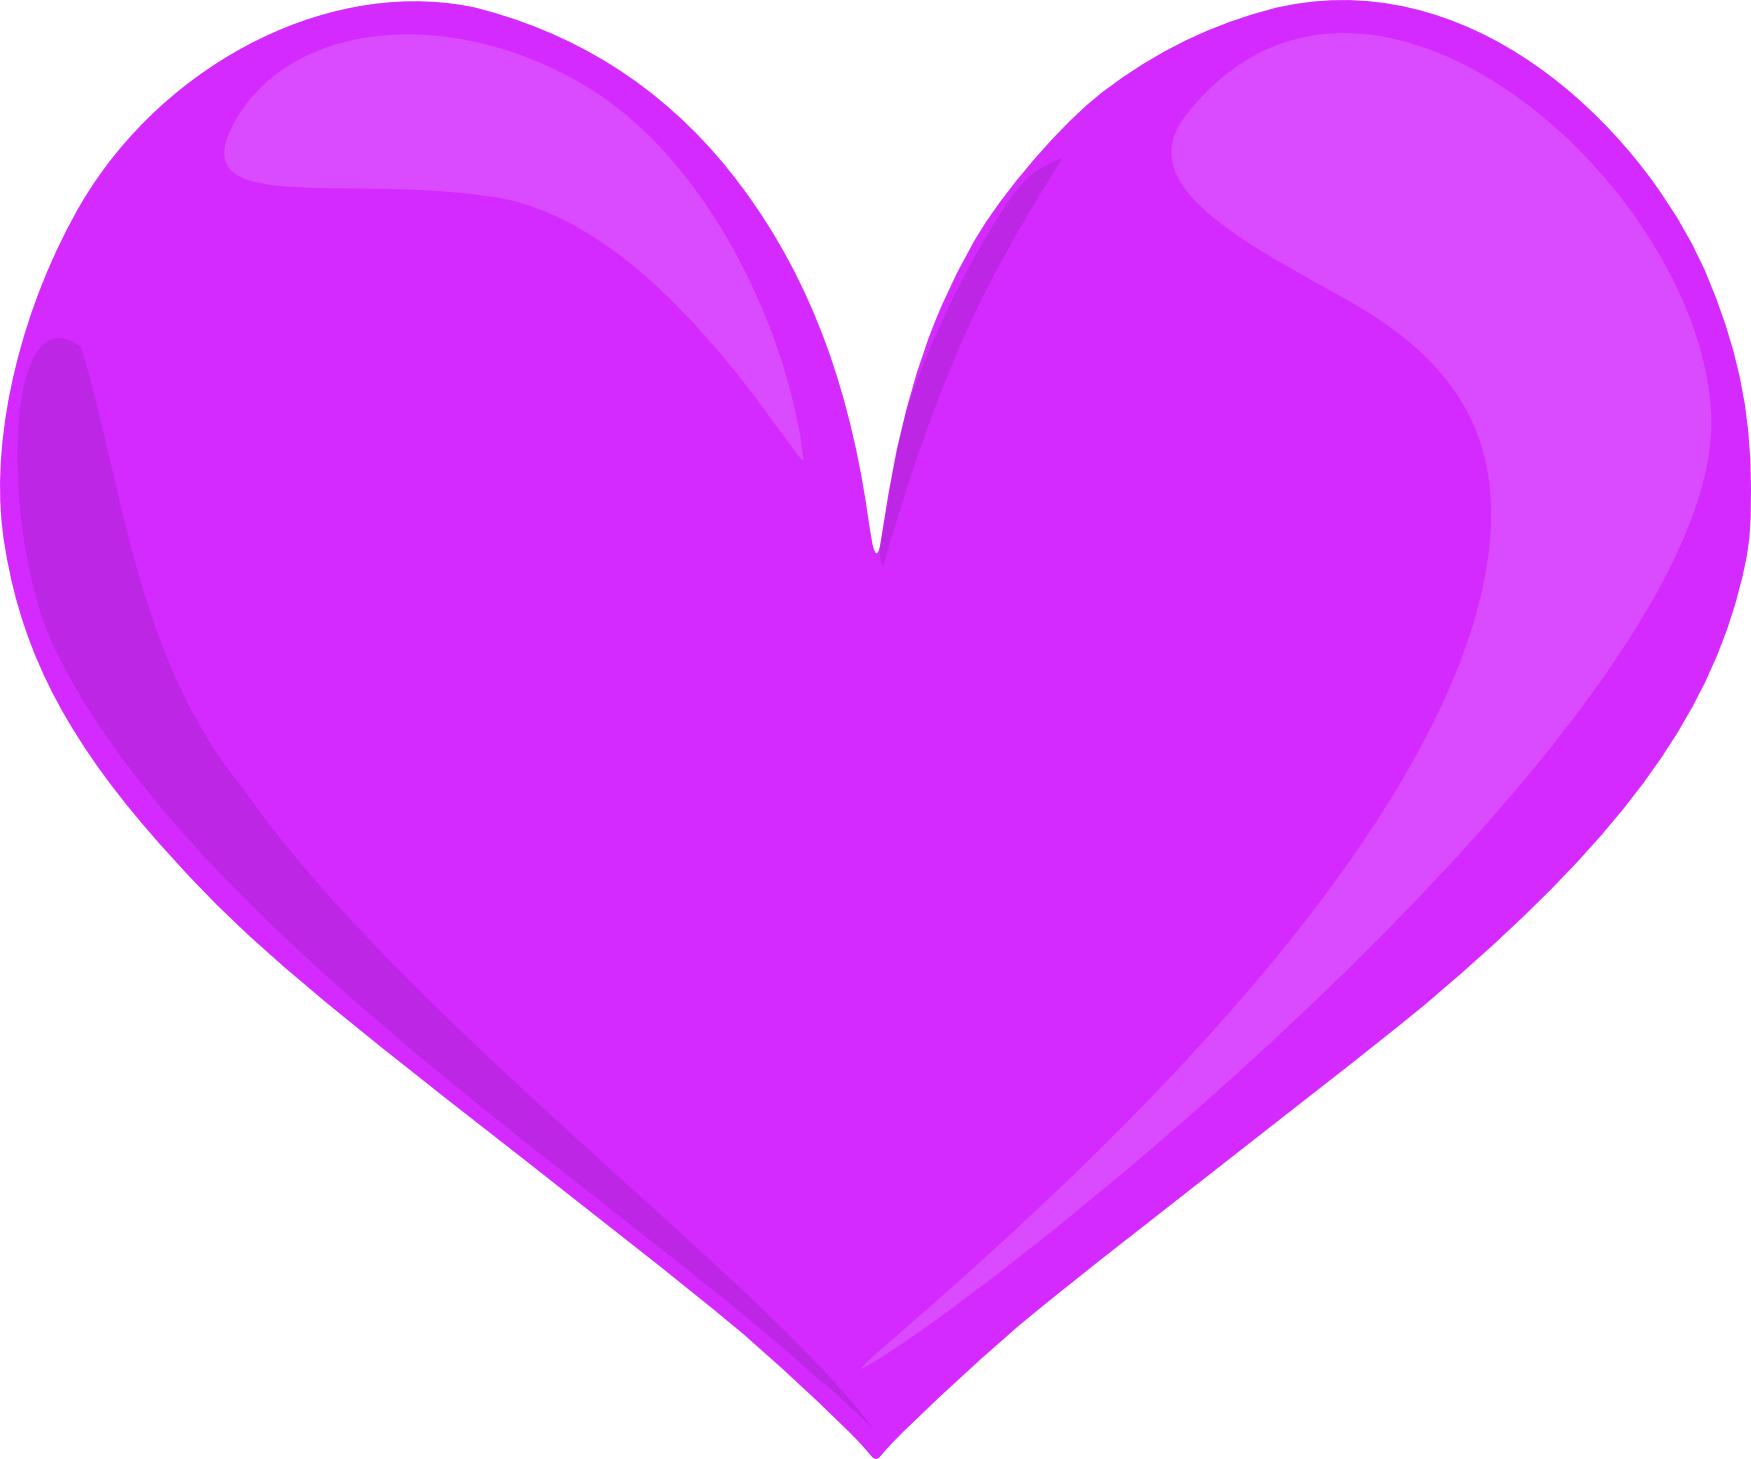 Purple hearts png. Glass stormdesignz aqua heart